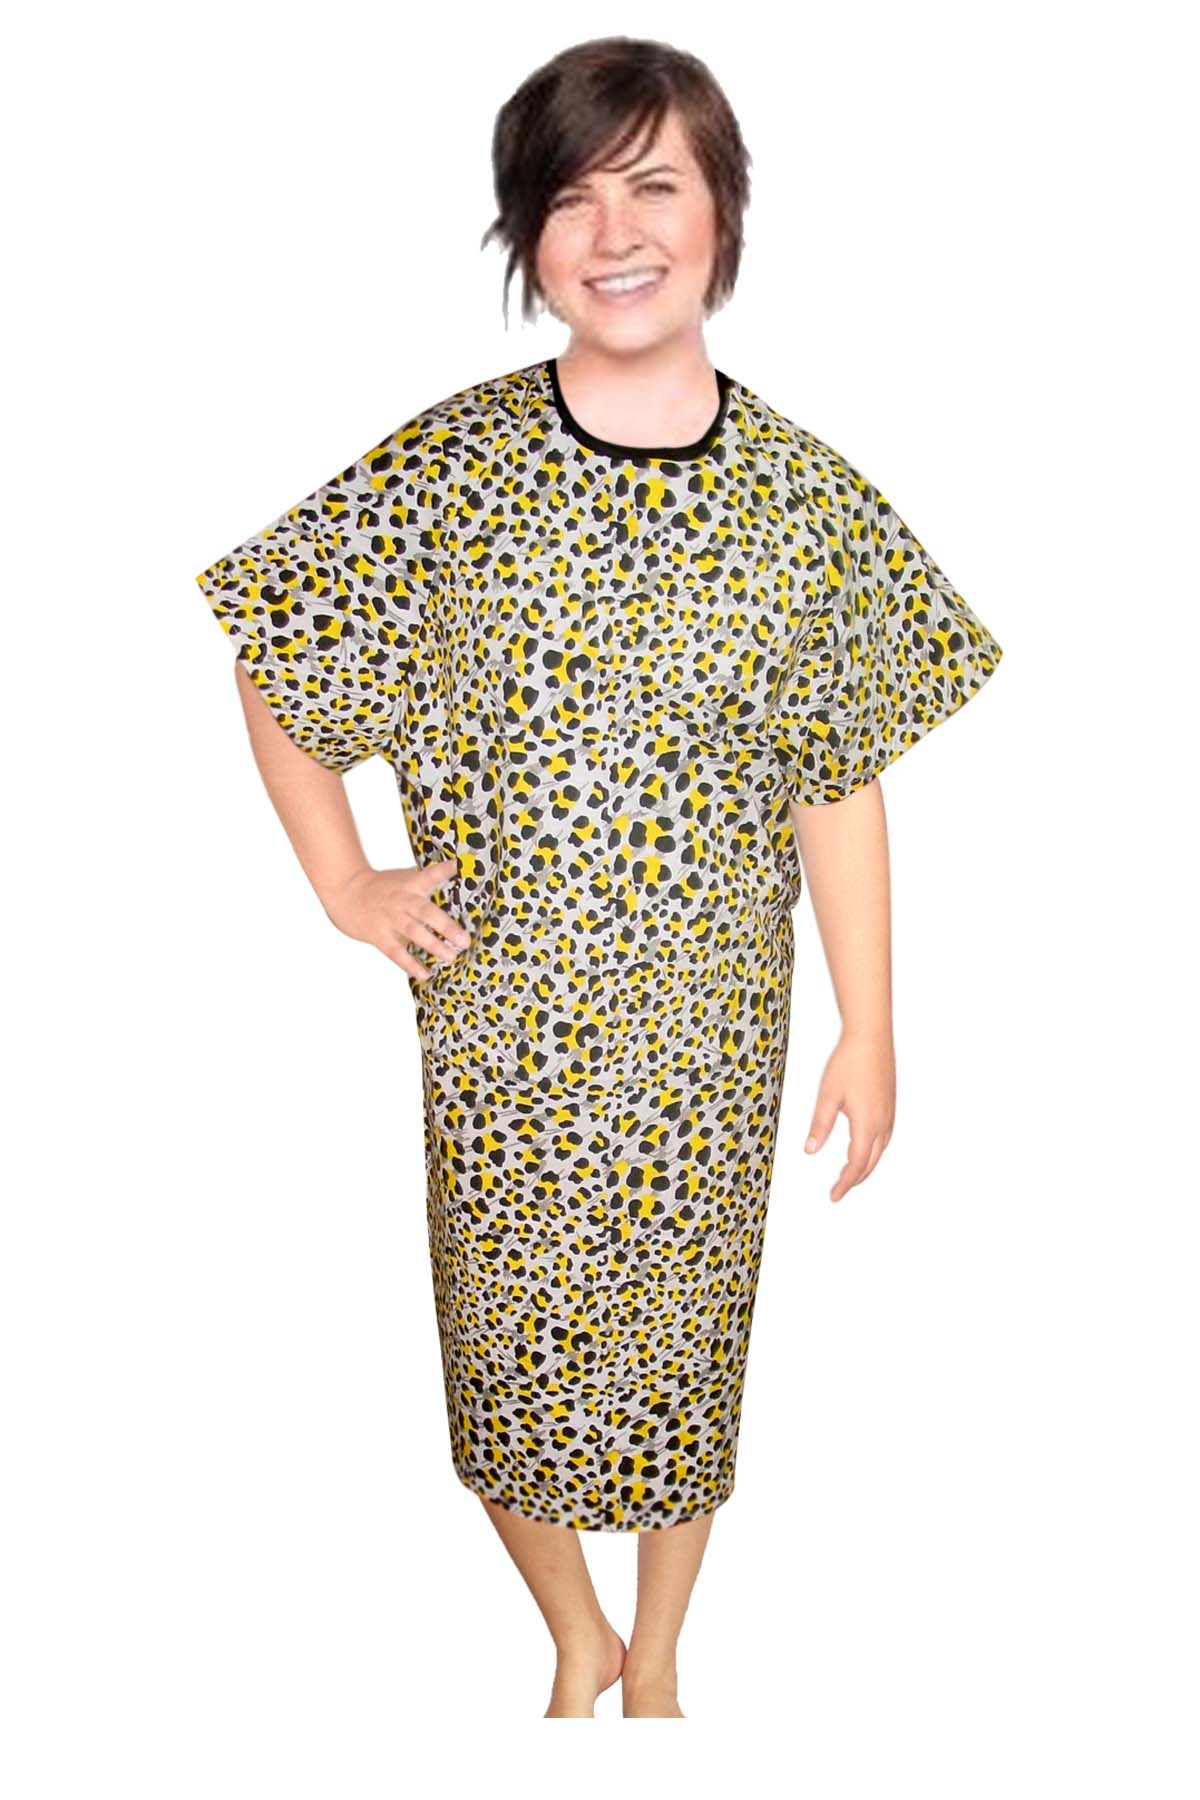 Patient gown half sleeve printed back open, tie-able  from two points yellow black print Chest 54 Inches Length 45 inches $6.25 and Chest 80 inches Length 49 inches $9.25